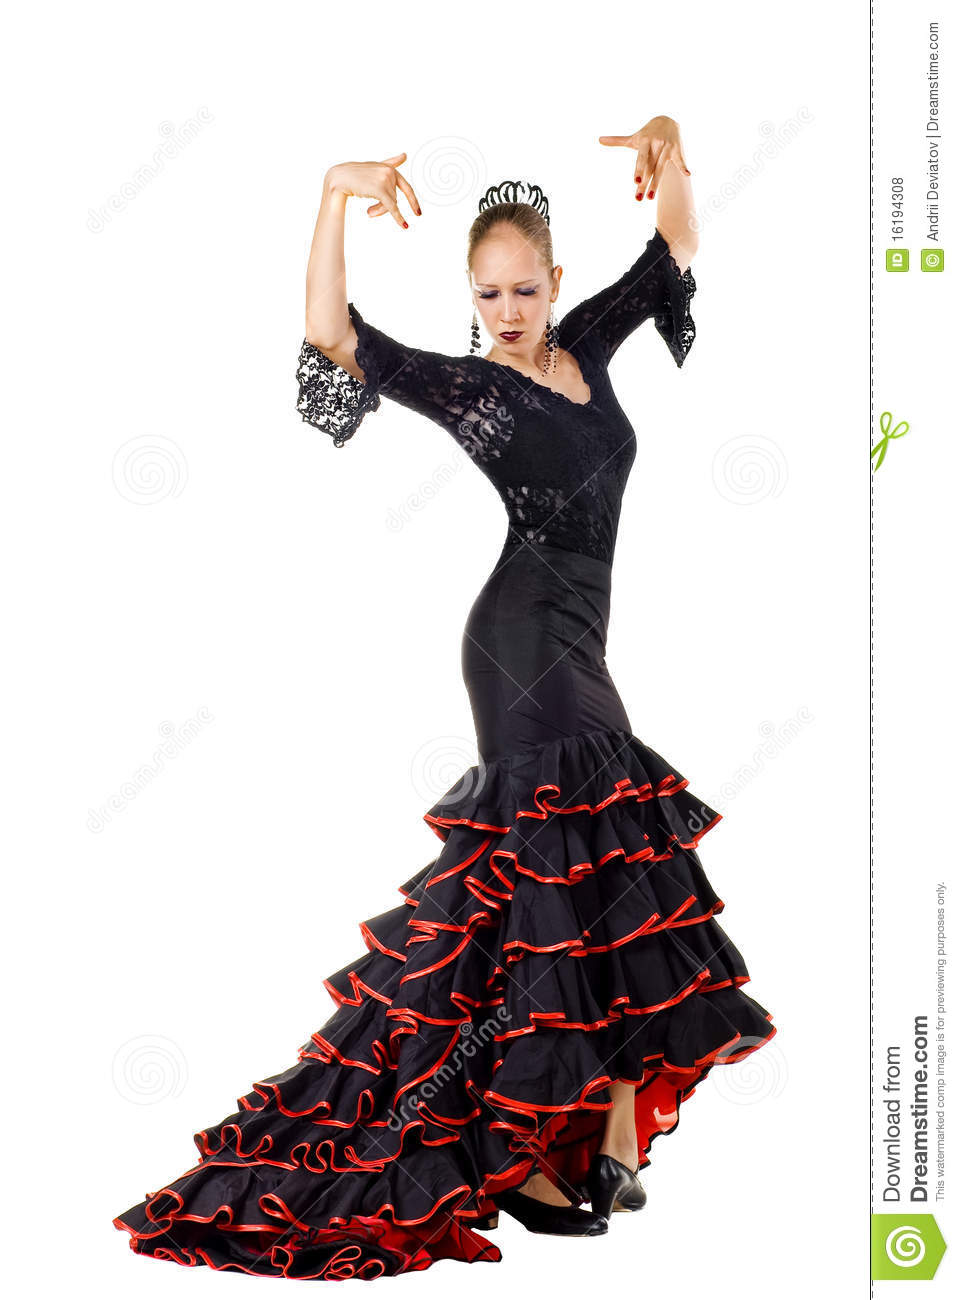 Flamenco Dancer Royalty Free Stock Photos Image 16194308